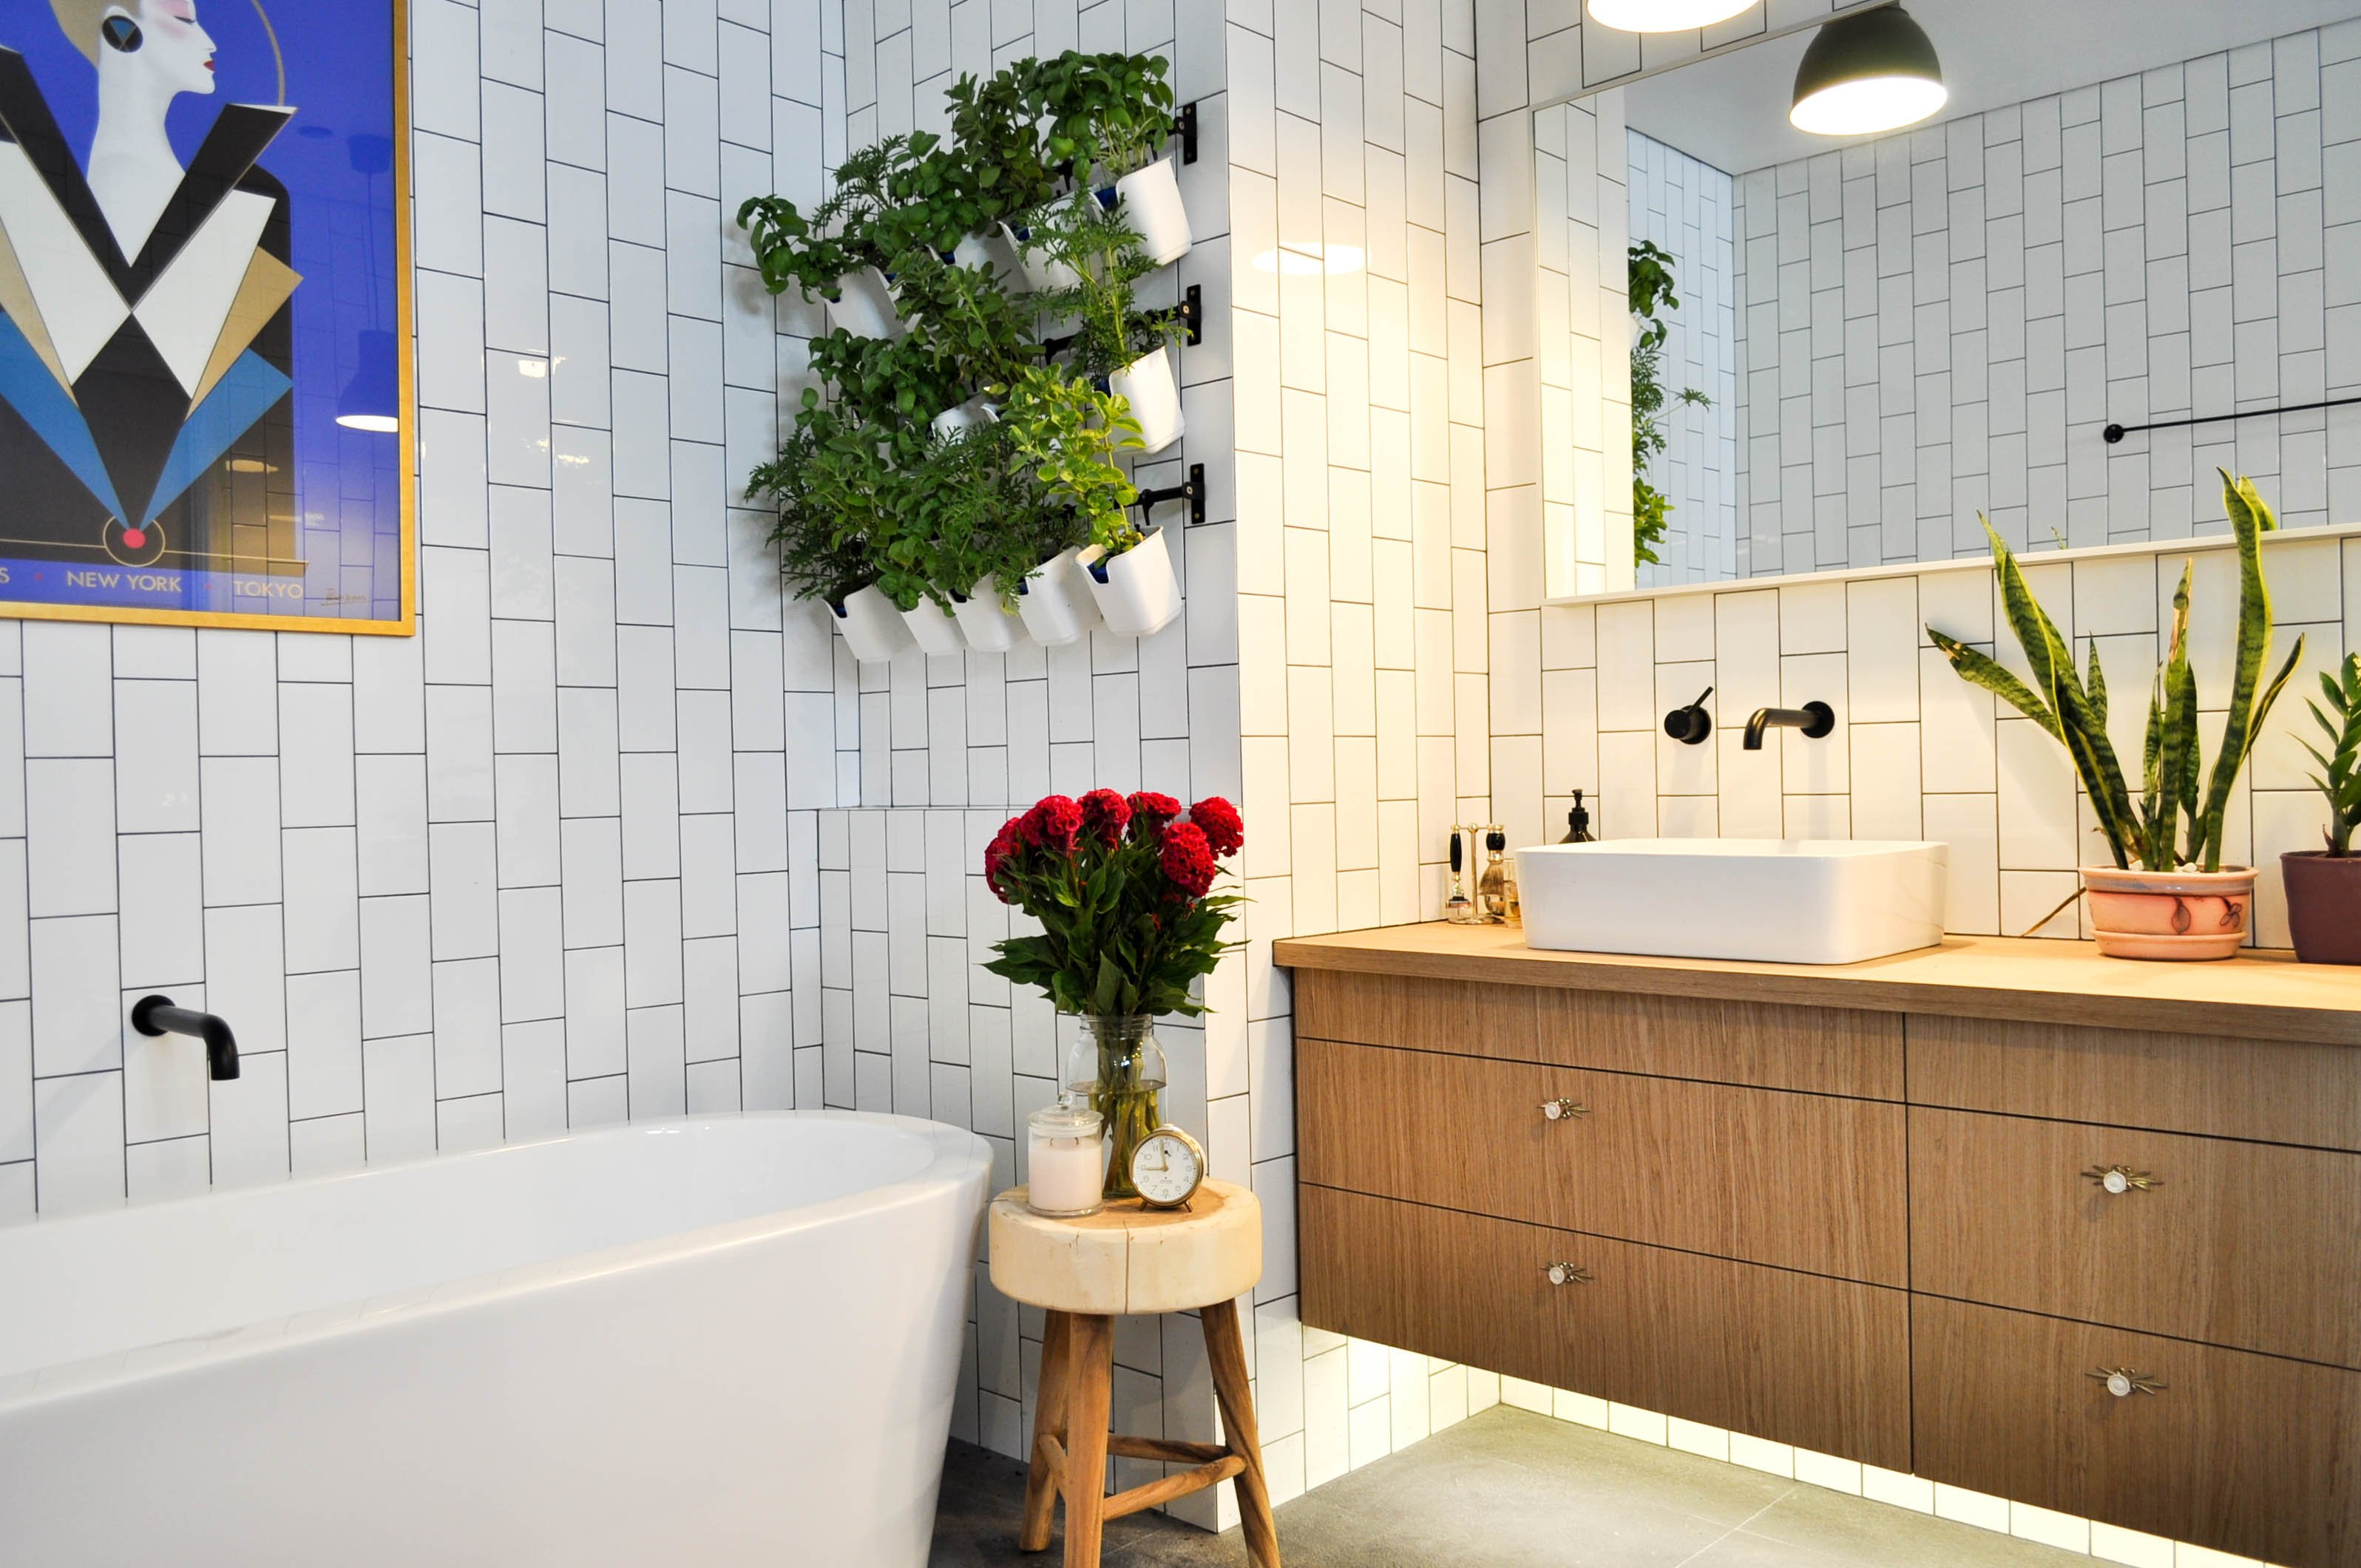 6 How to Makeover Your Bathroom For Under 100 VIA SIMPHOME